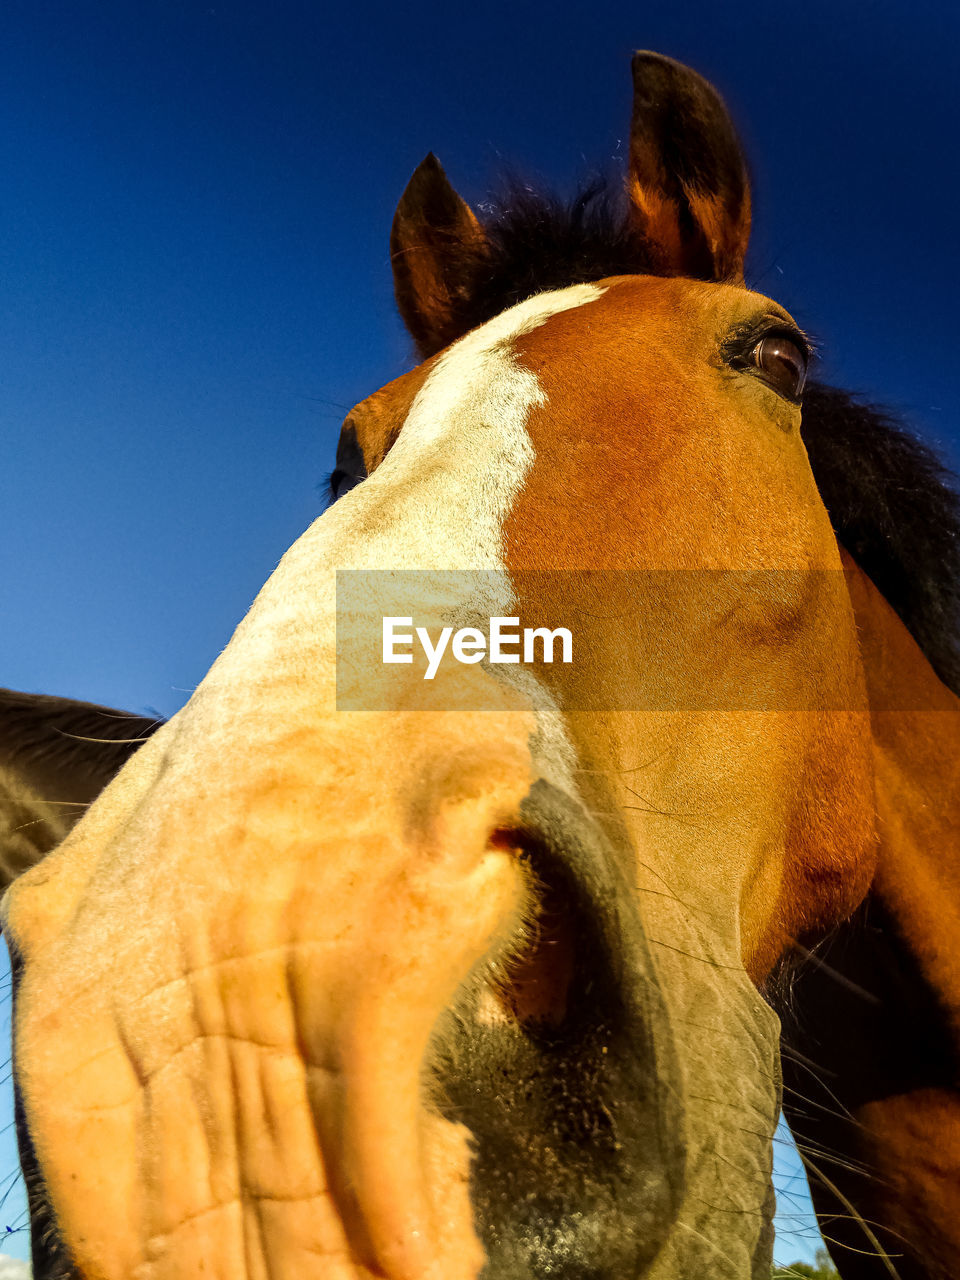 mammal, animal themes, animal, domestic animals, one animal, domestic, livestock, pets, vertebrate, animal wildlife, horse, animal body part, animal head, sky, no people, close-up, working animal, herbivorous, brown, clear sky, outdoors, animal nose, animal mouth, animal eye